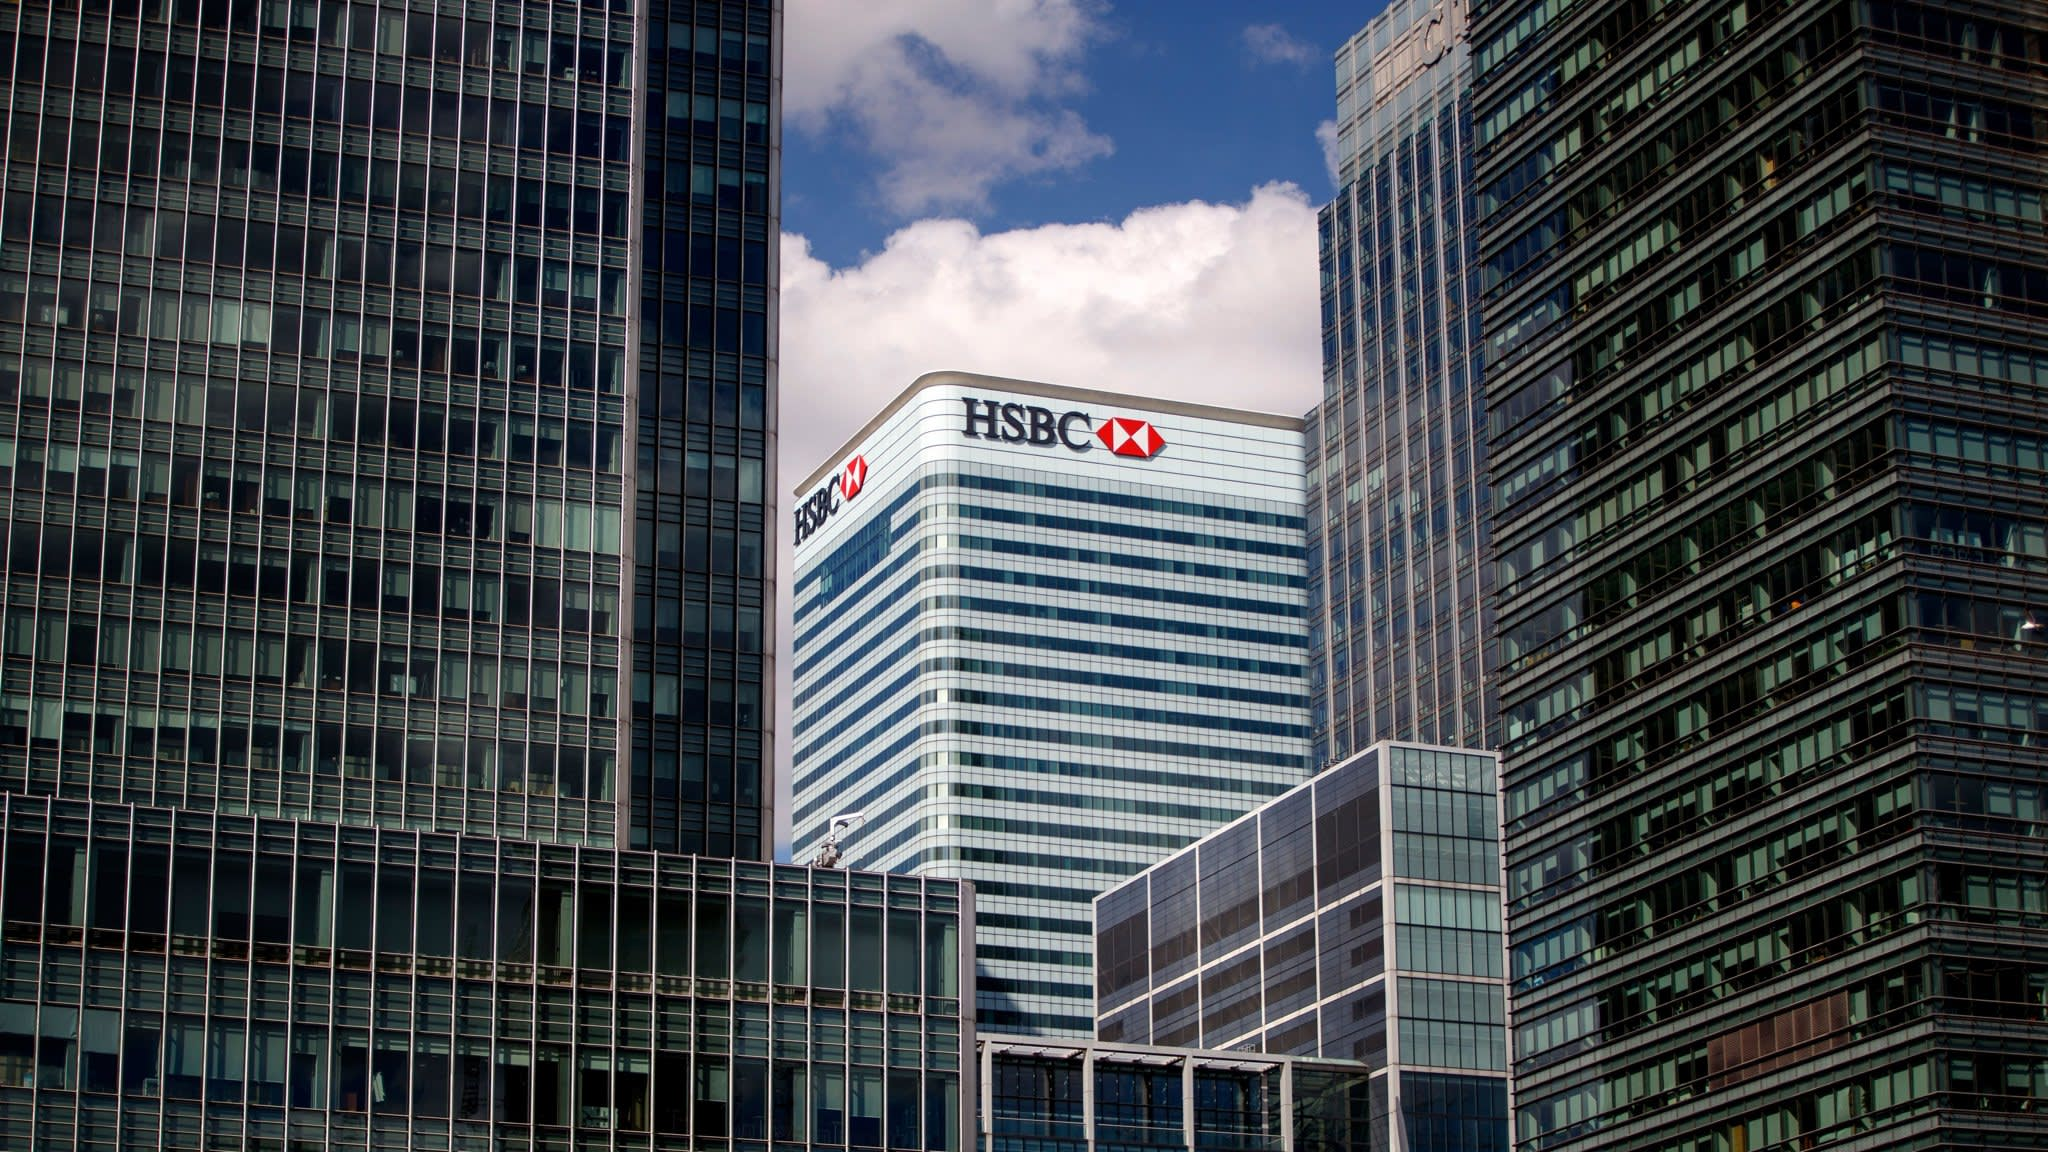 HSBC rocked by claim of investment bank's 'failure'